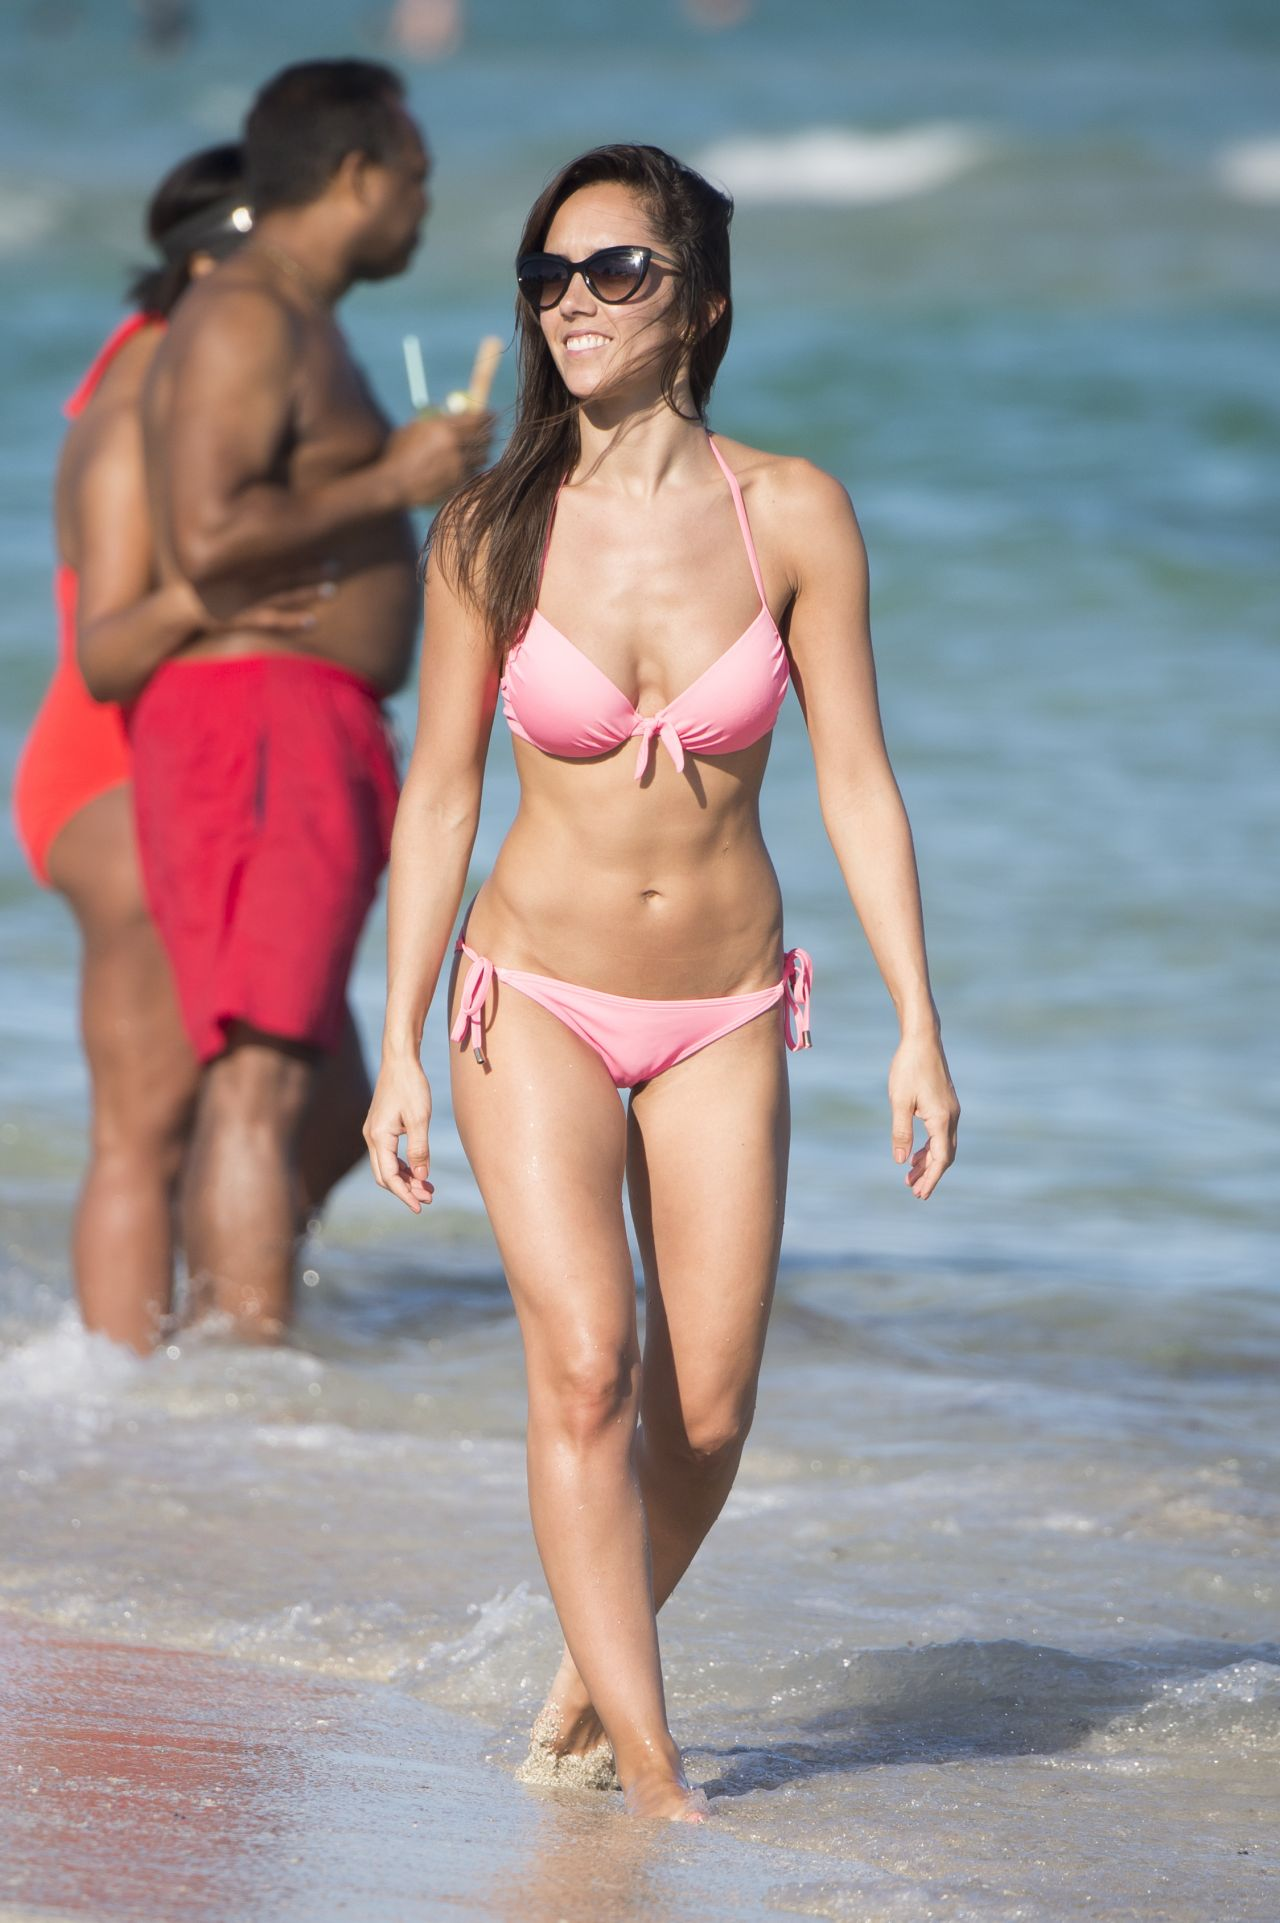 647d063c41 Janette Manrara in Pink Bikini On Miami Beach 12 28  2016